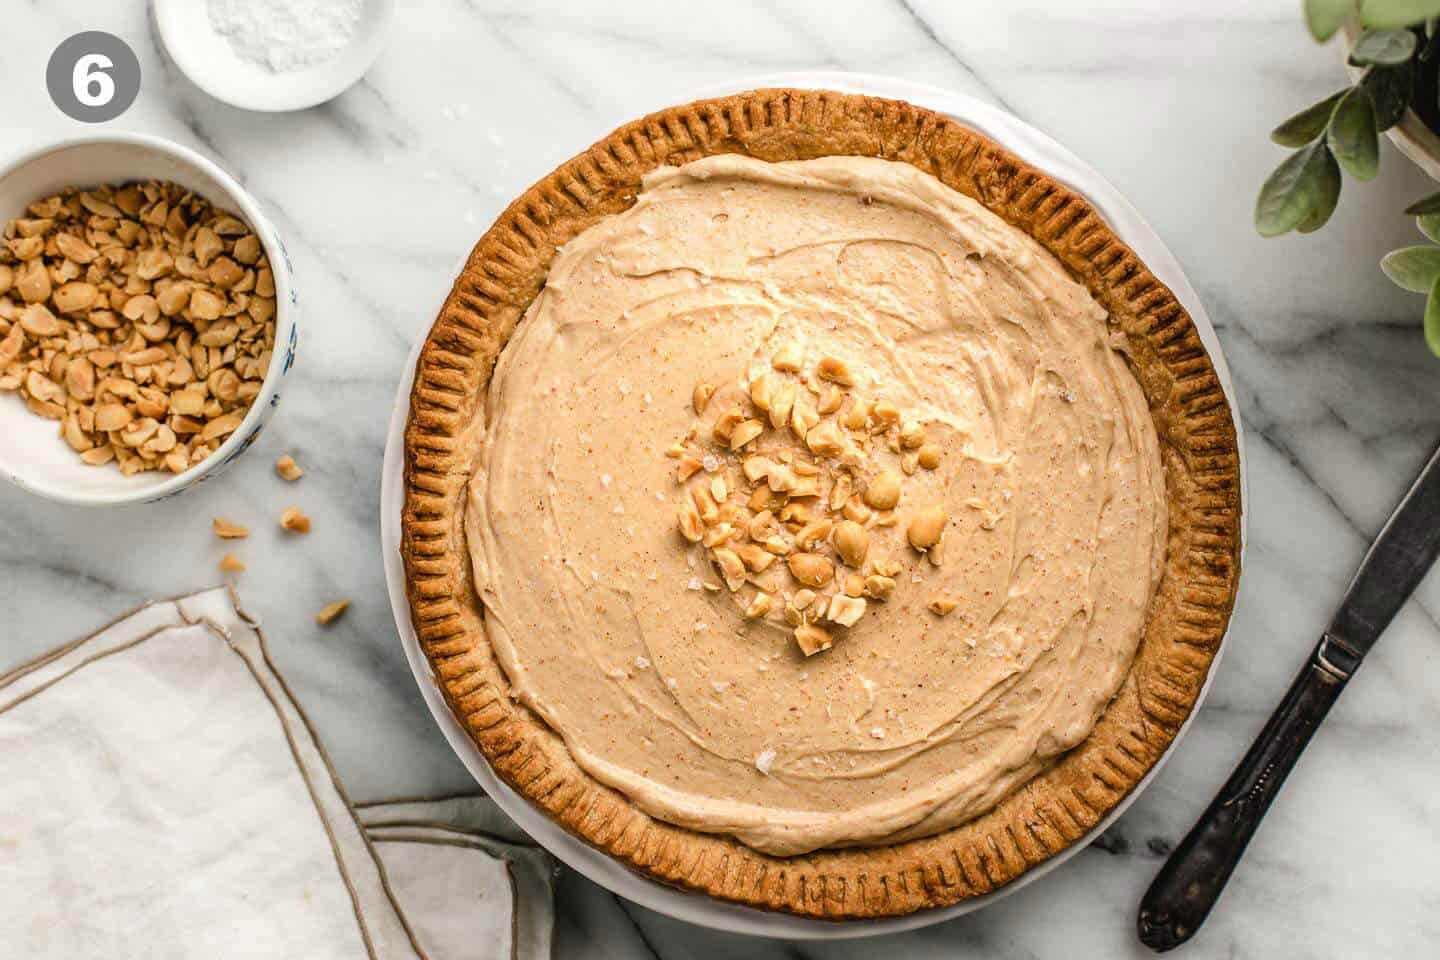 A peanut butter pie with chopped nuts and sea salt.